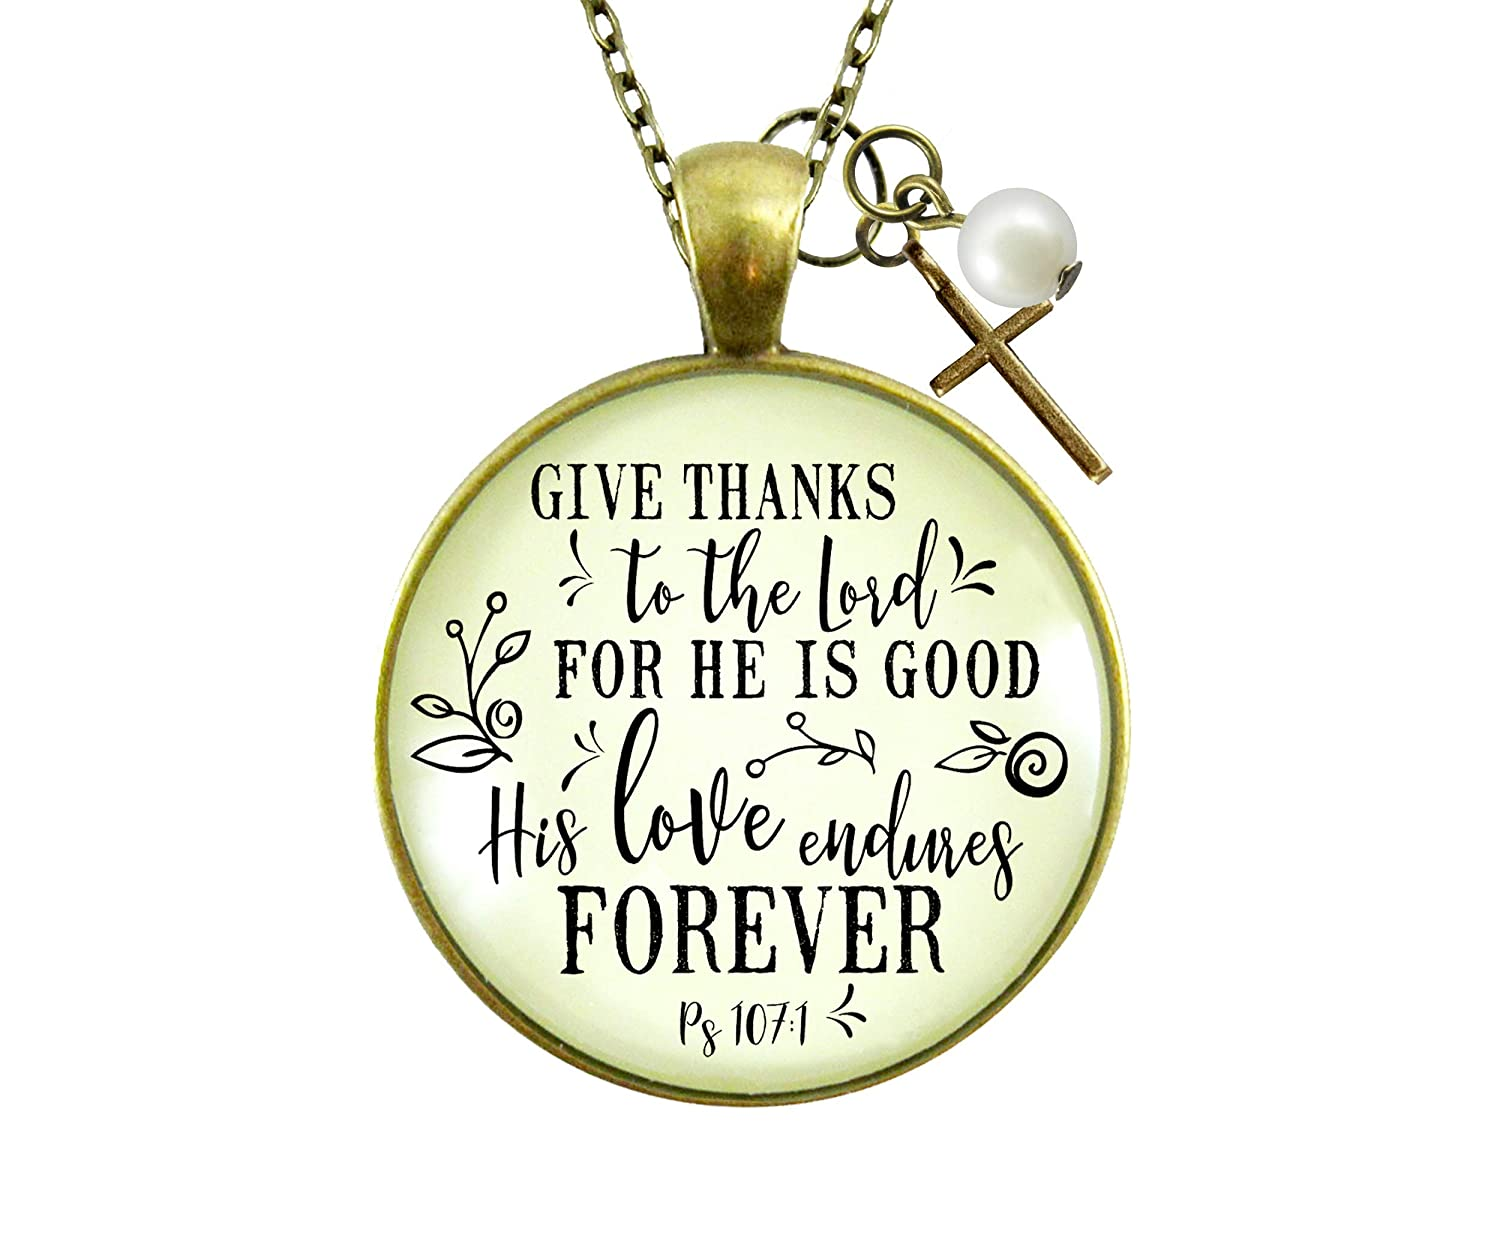 Amazon Com Gutsy Goodness 36 Give Thanks Necklace He Is Good Faith Jewelry For Women Handmade The tiki was believed to be the fist mortal created by the gods and was respected. amazon com gutsy goodness 36 give